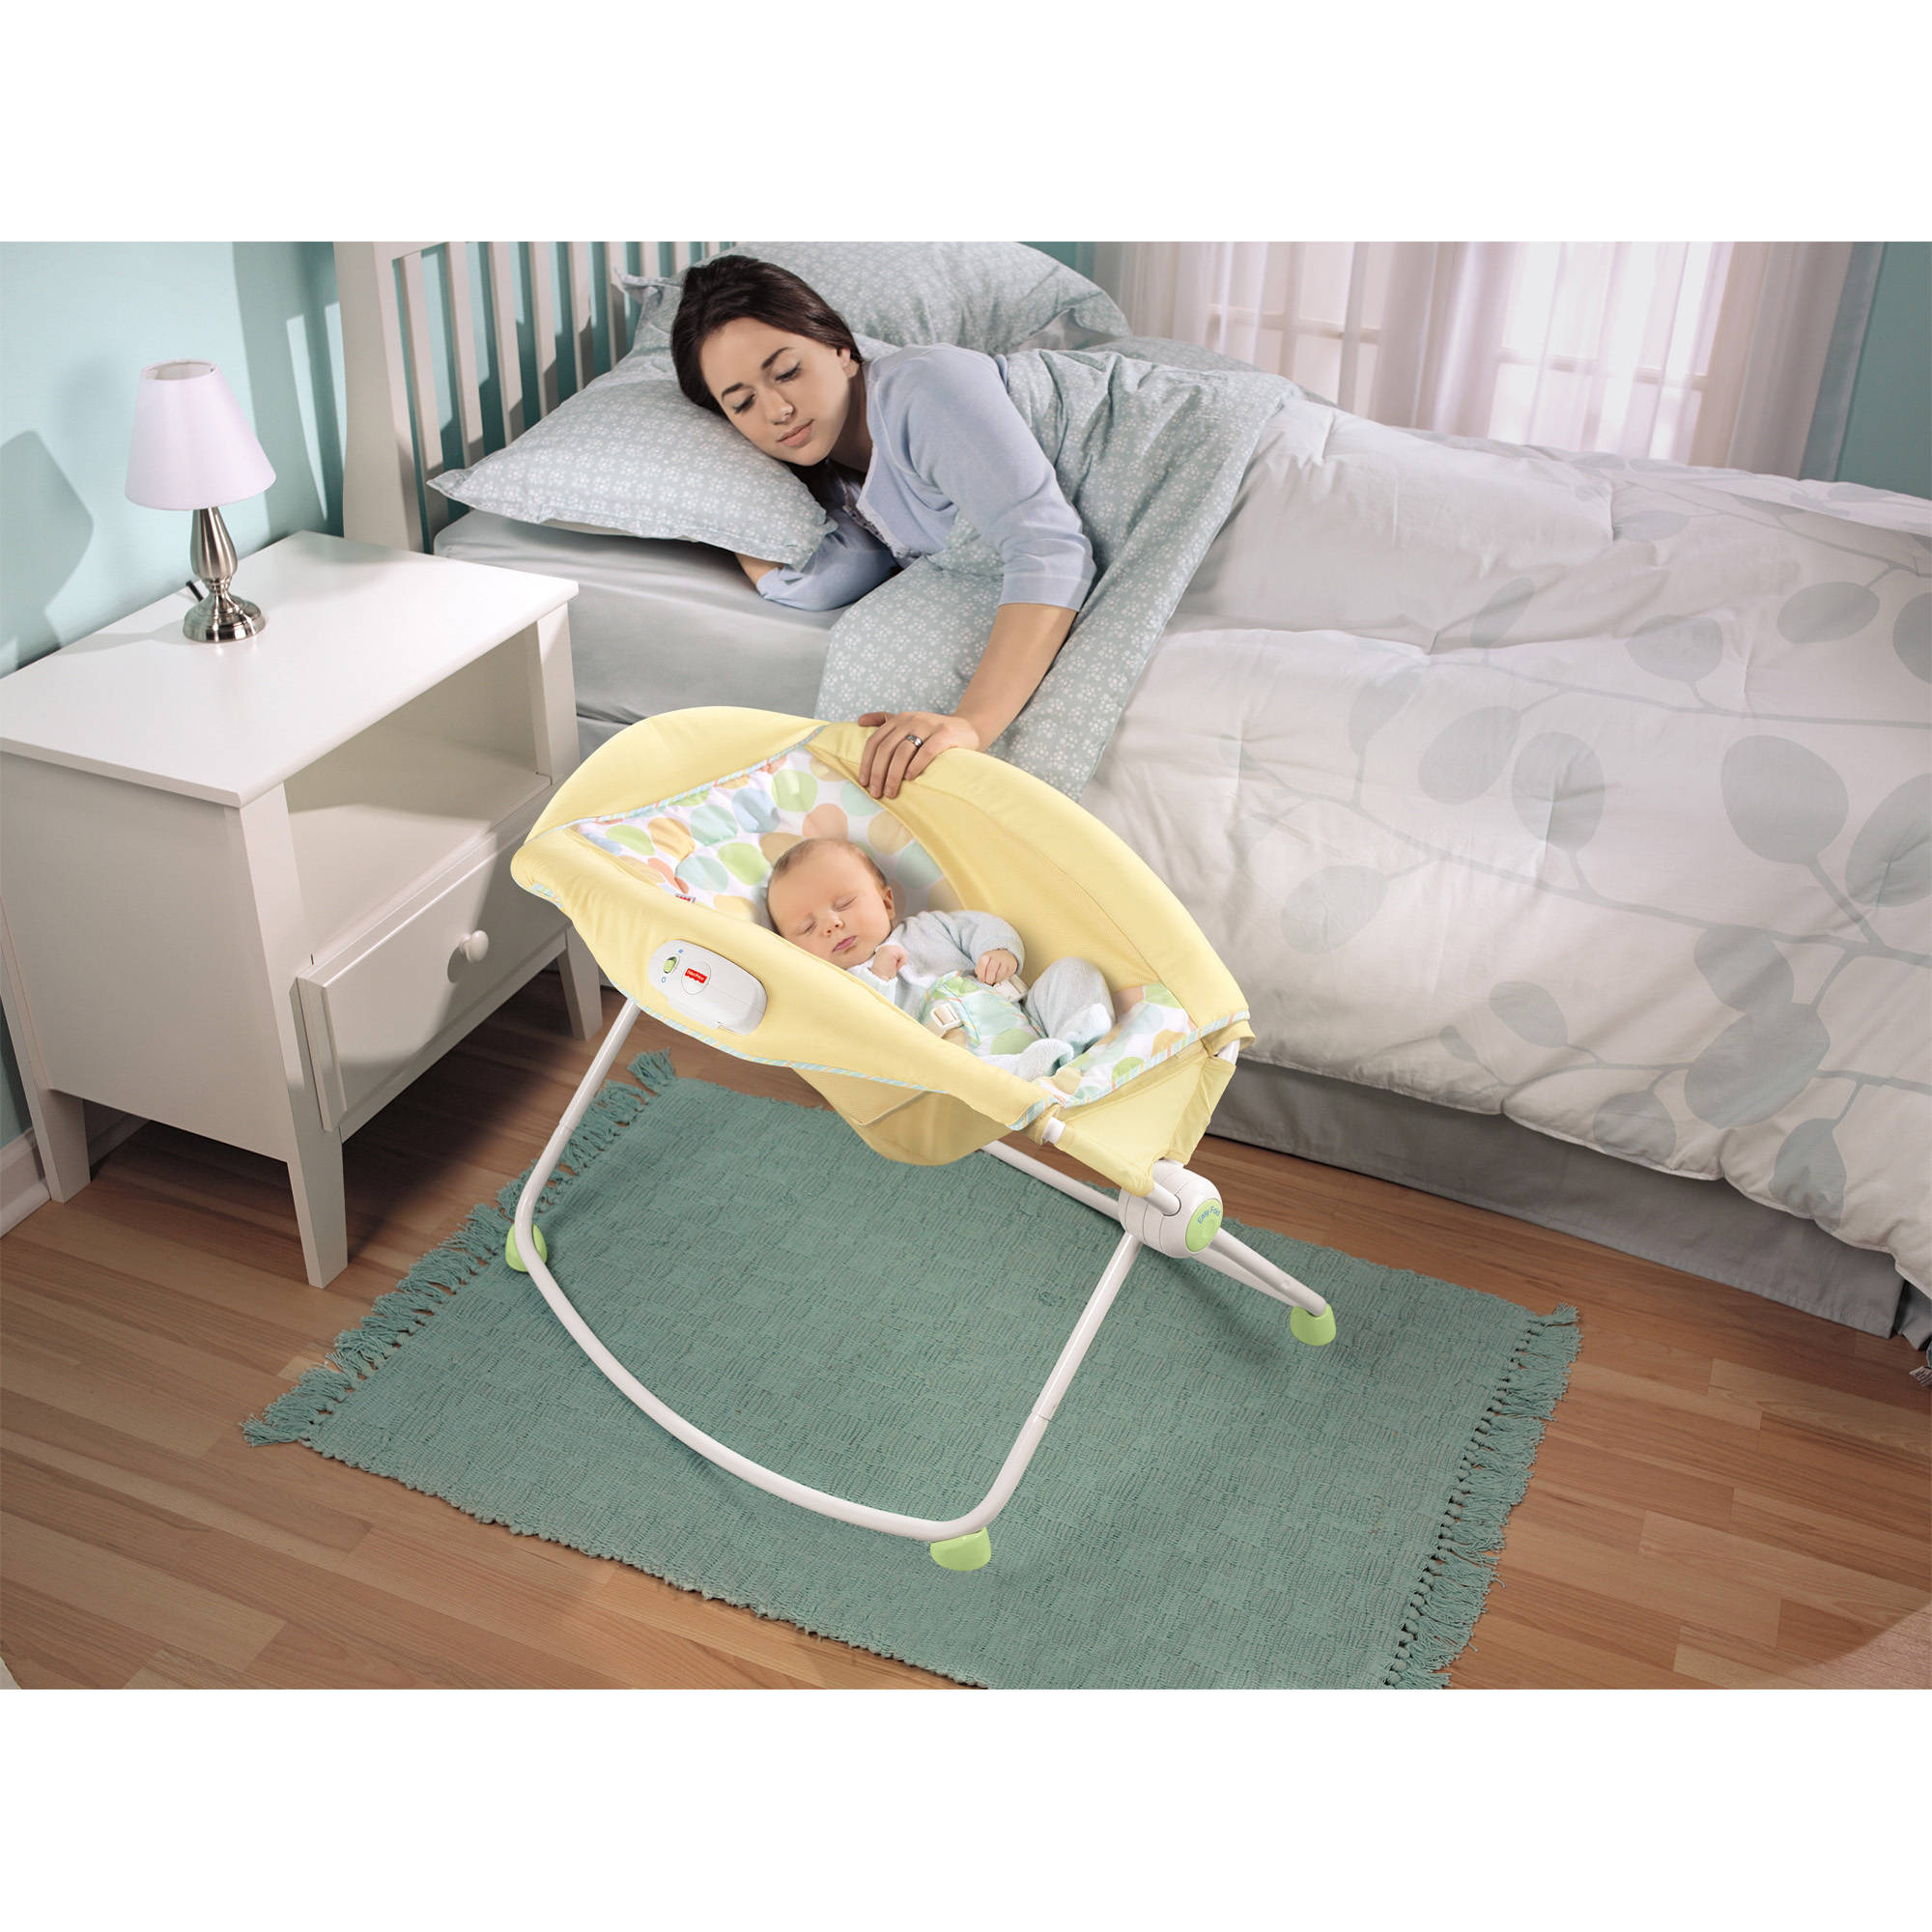 Rock N Play Sleeper Vs Bassinet Baby Gear Centre